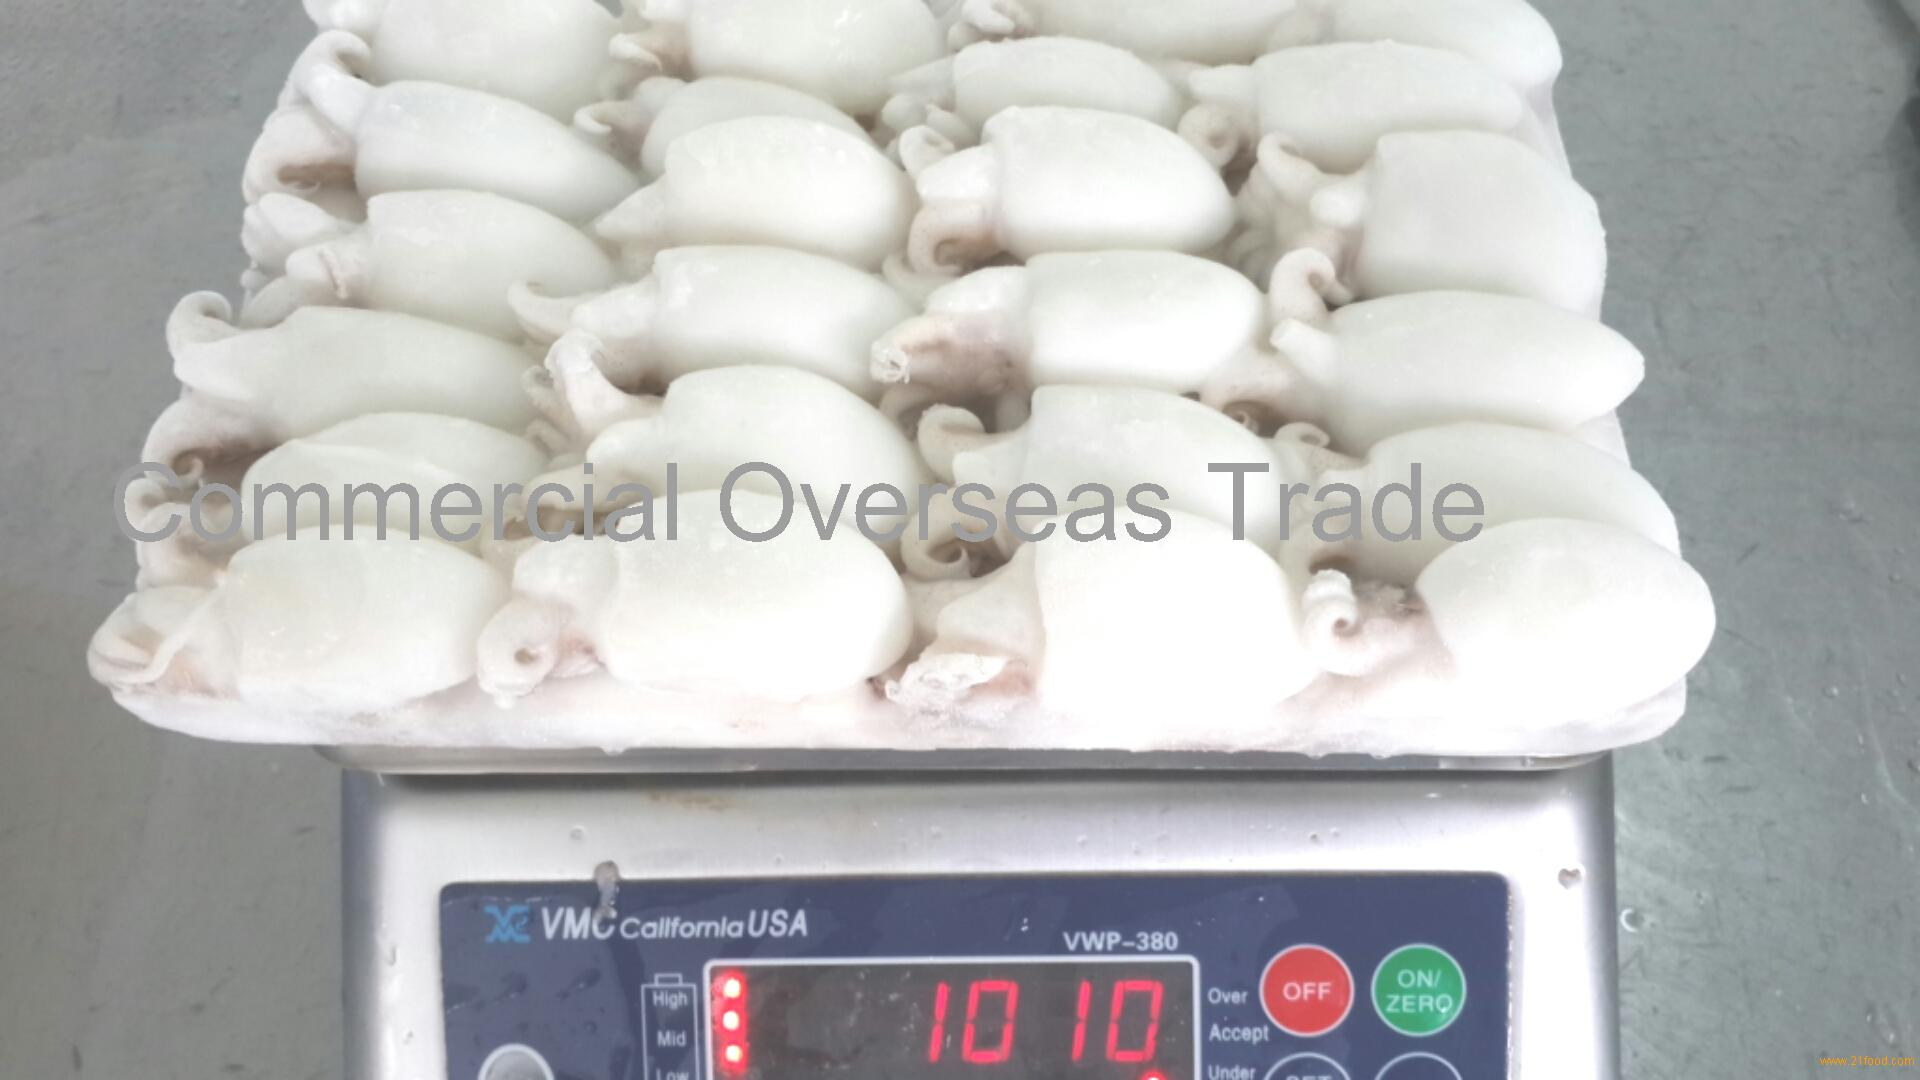 Frozen cuttlefish for sale. 30% discount